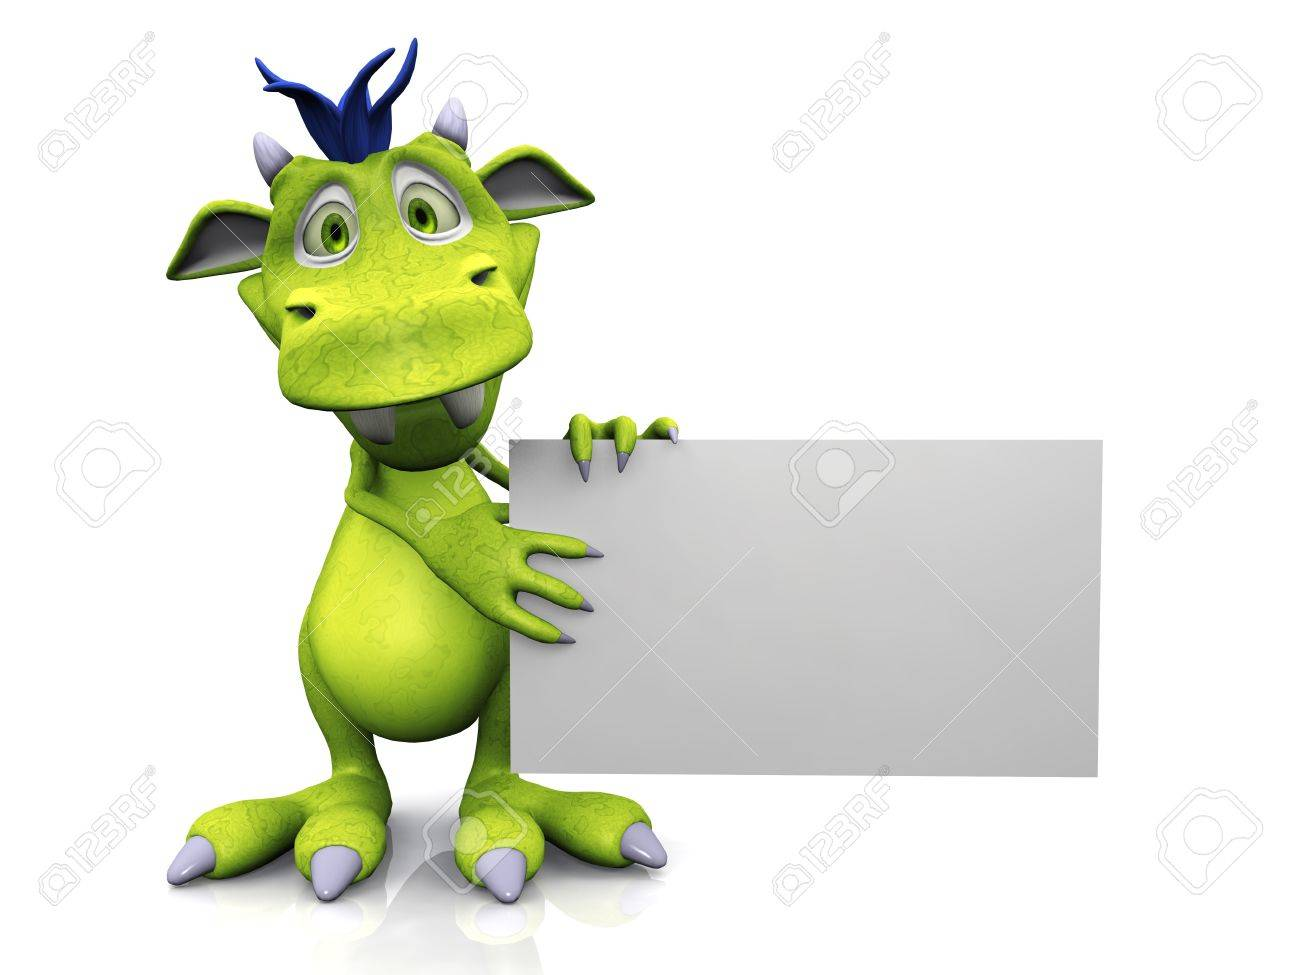 A cute friendly cartoon monster holding a blank sign in his hands  The monster is green with blue hair  White background Stock Photo - 17562691